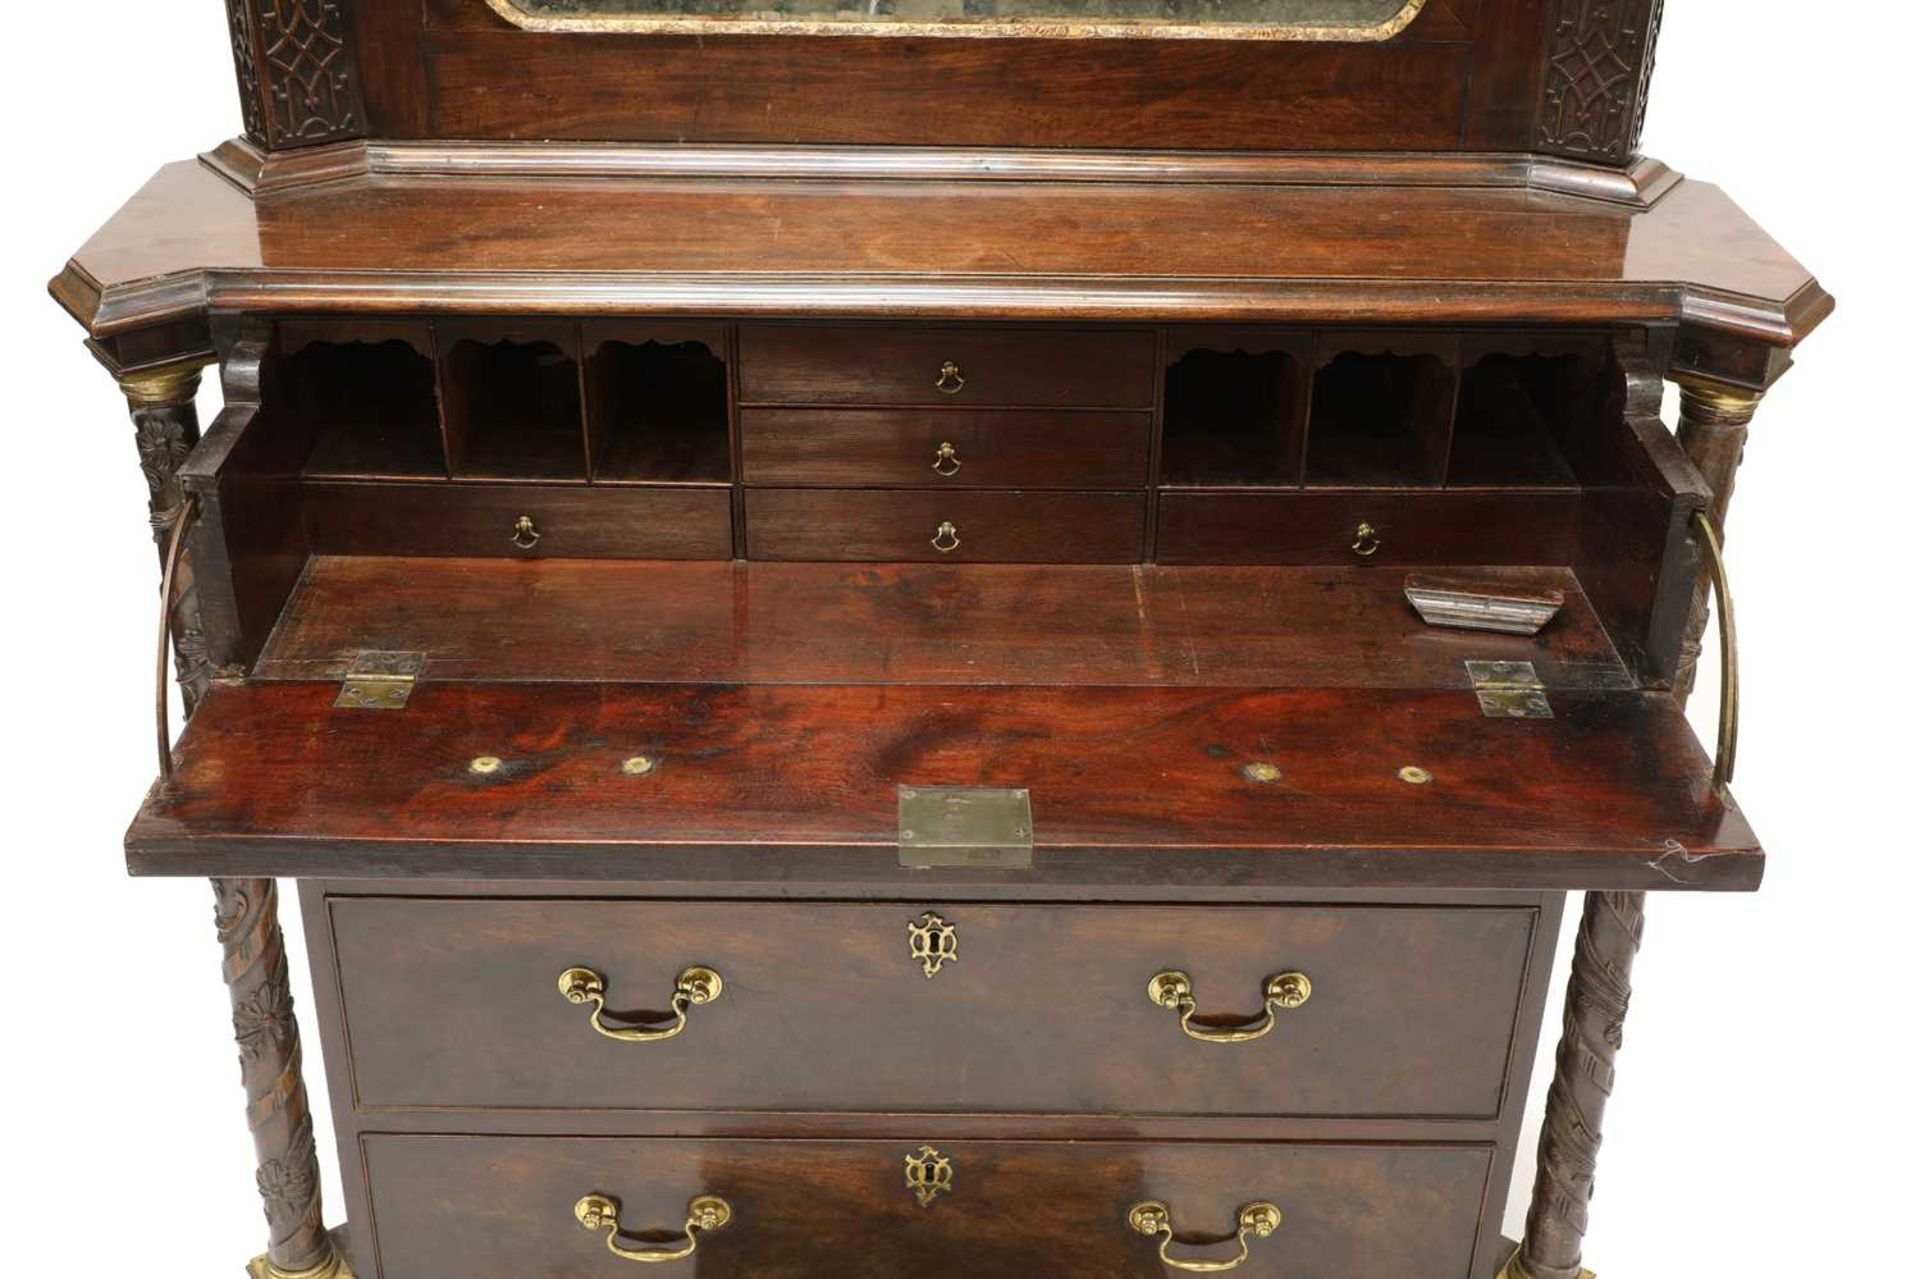 A Chippendale period mahogany secretaire bookcase, - Image 8 of 9